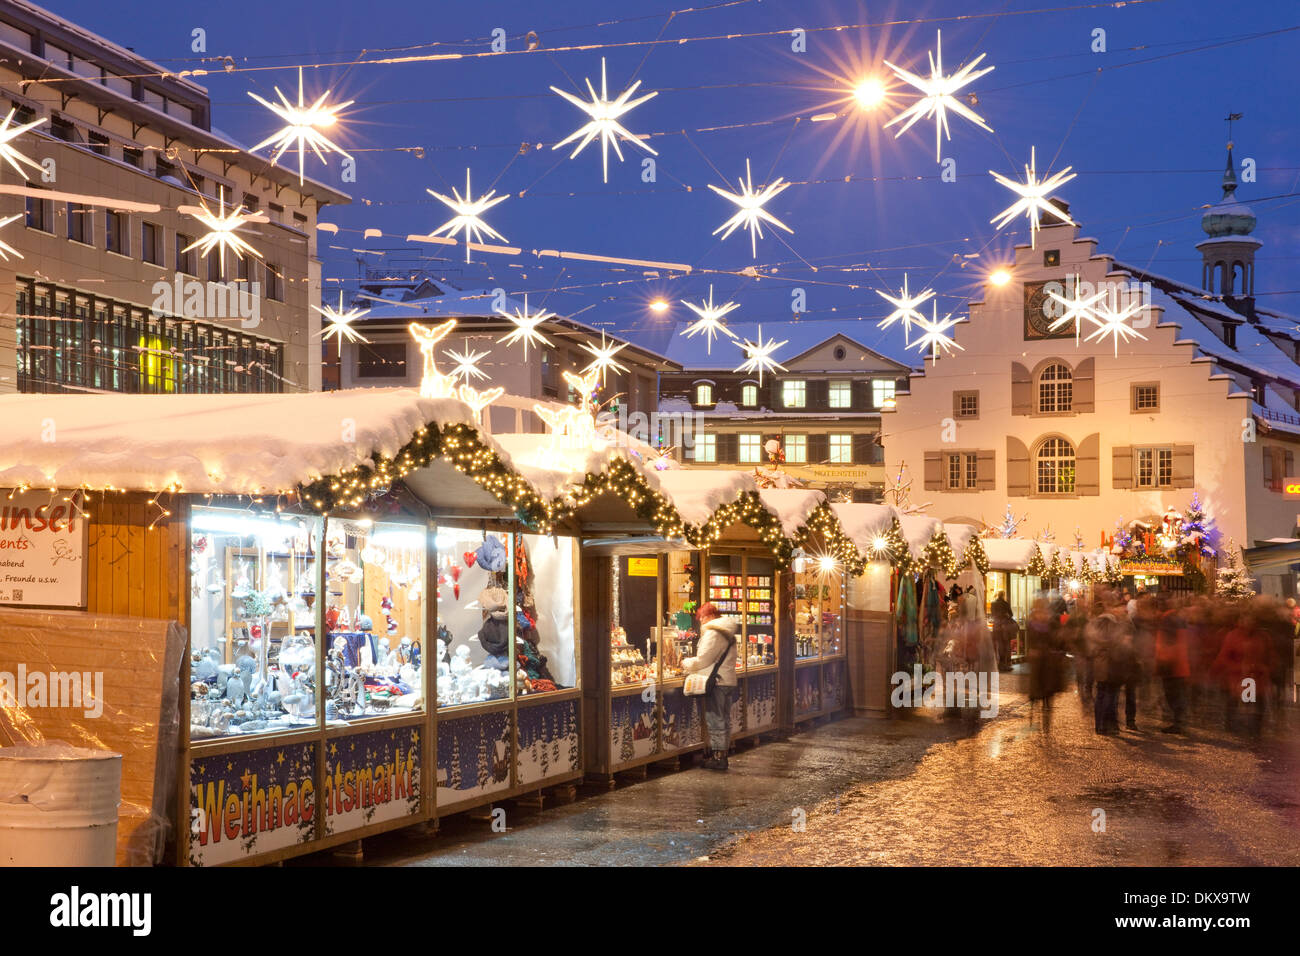 switzerland europe night dark christmas advent canton sg st gallen stock photo 63888073 alamy. Black Bedroom Furniture Sets. Home Design Ideas